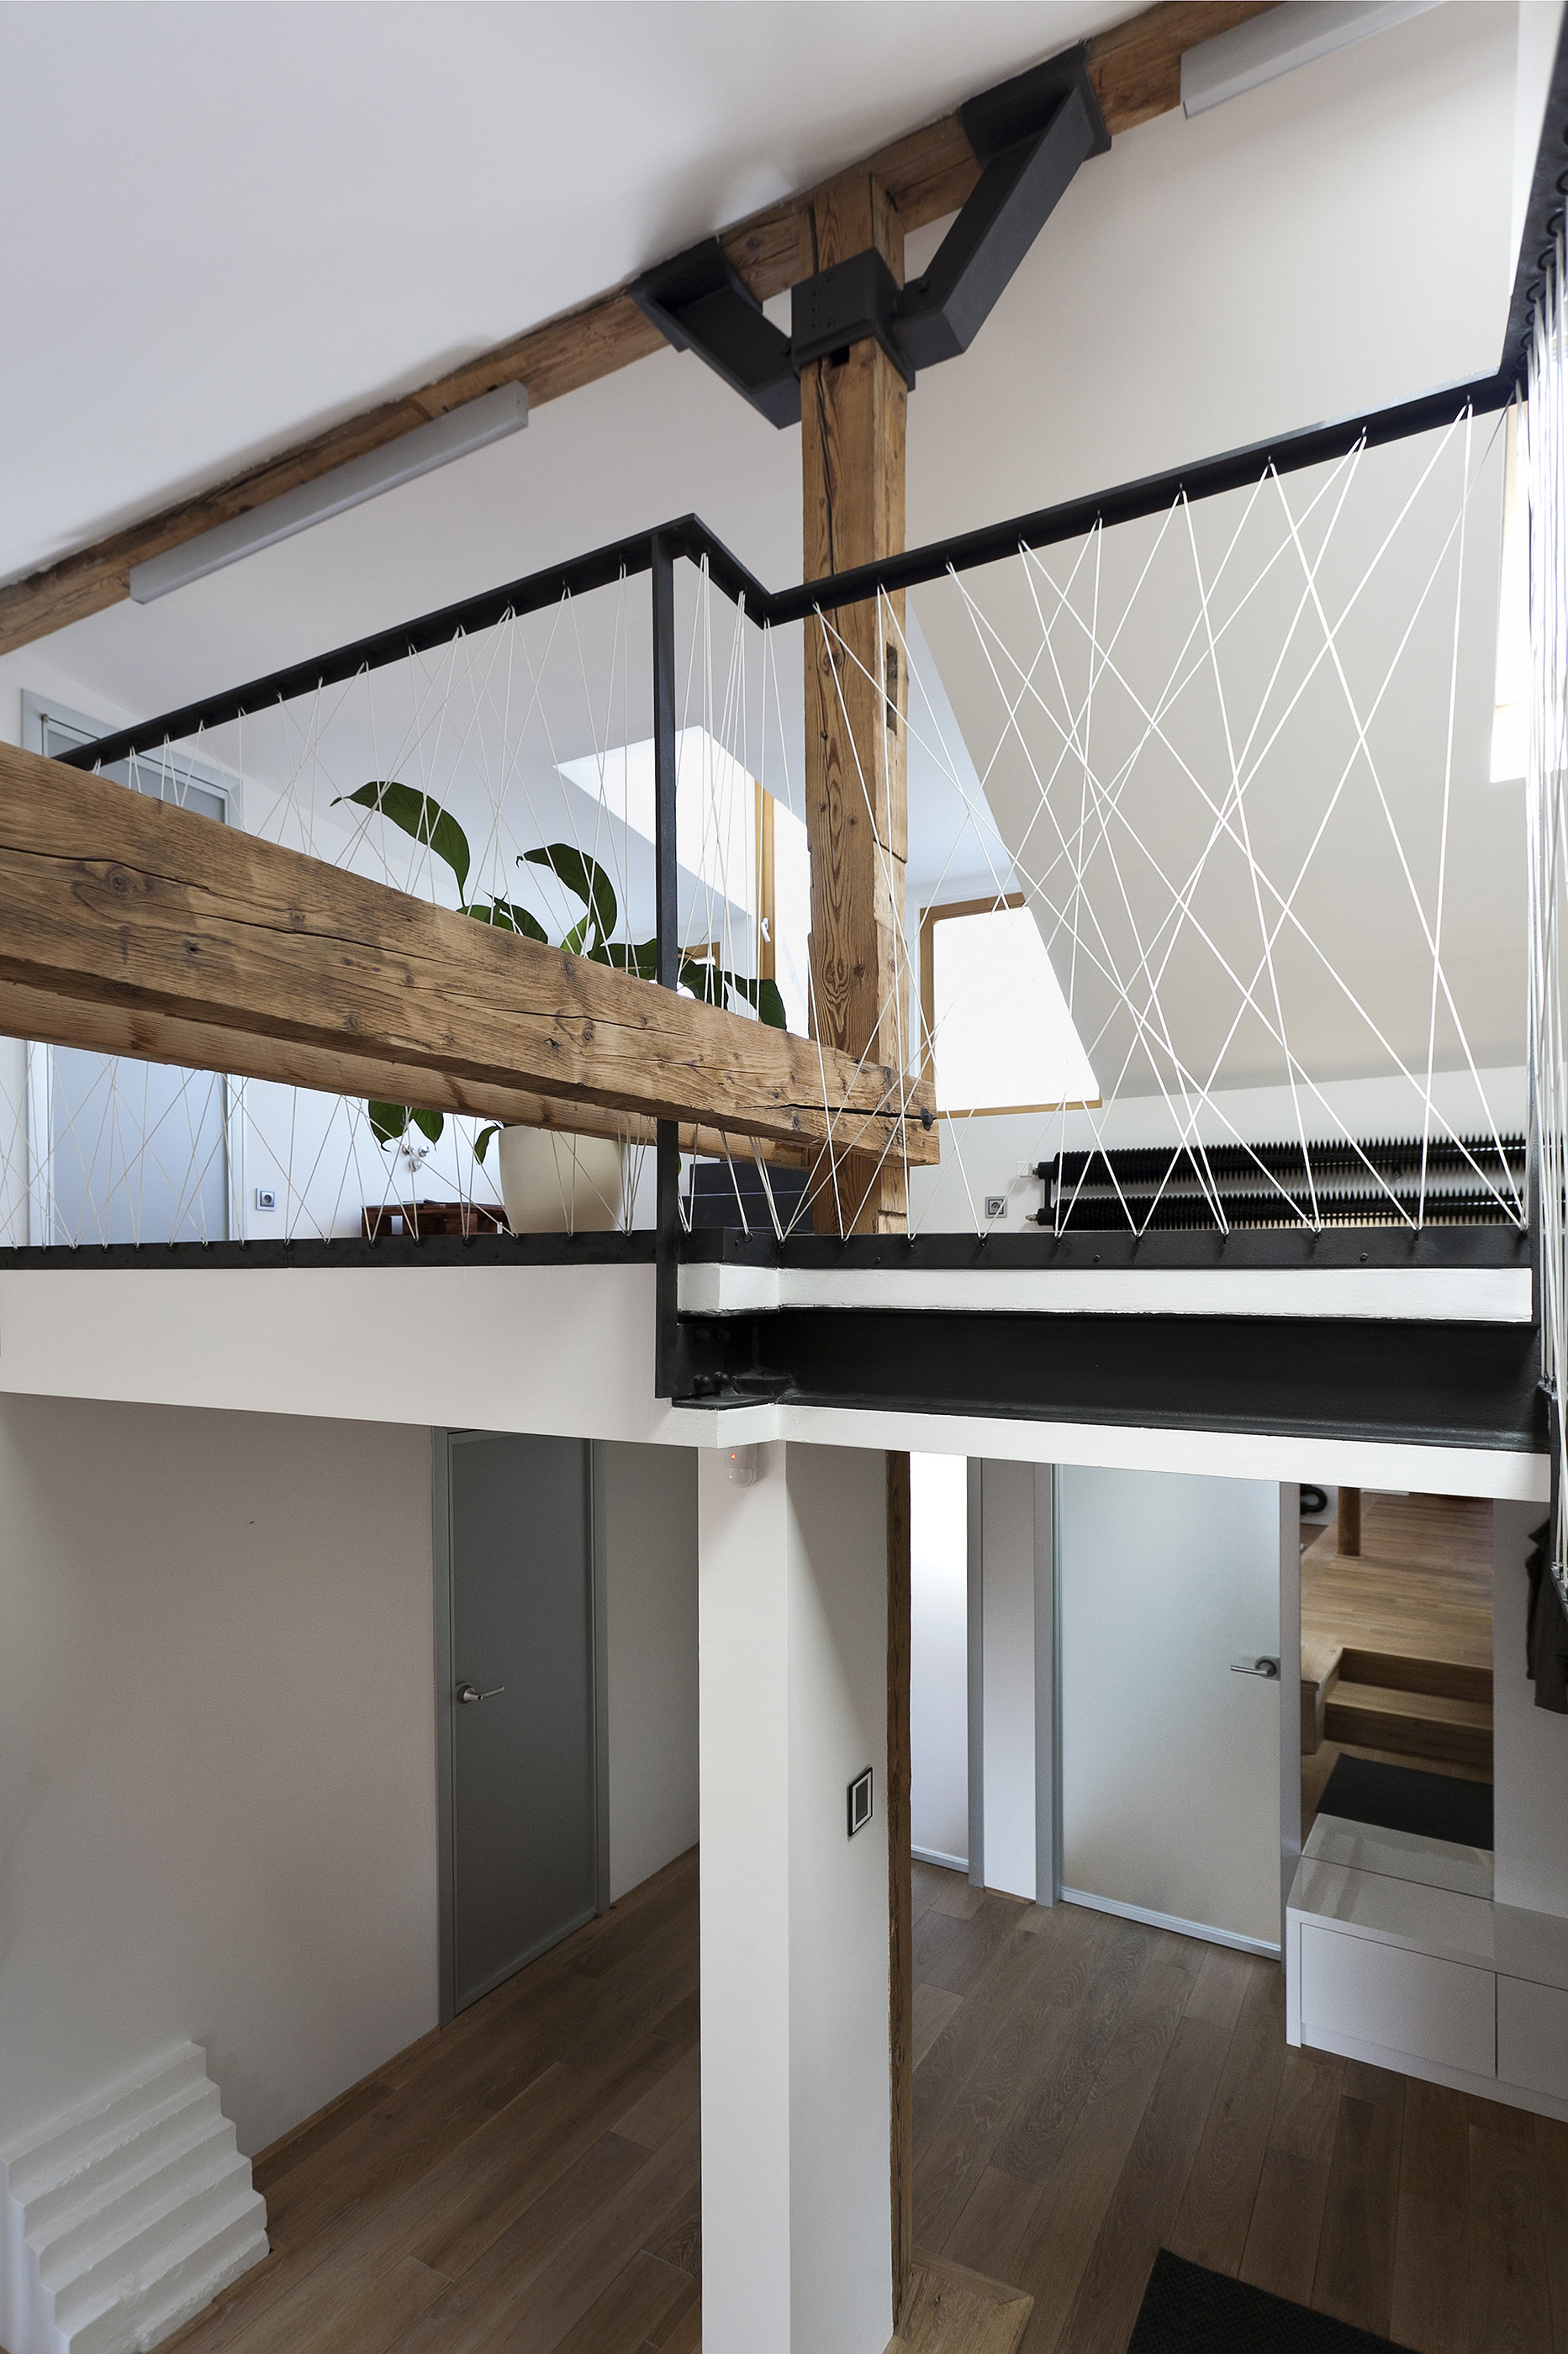 Gallery of Attic Loft Reconstruction  B Architecture  4